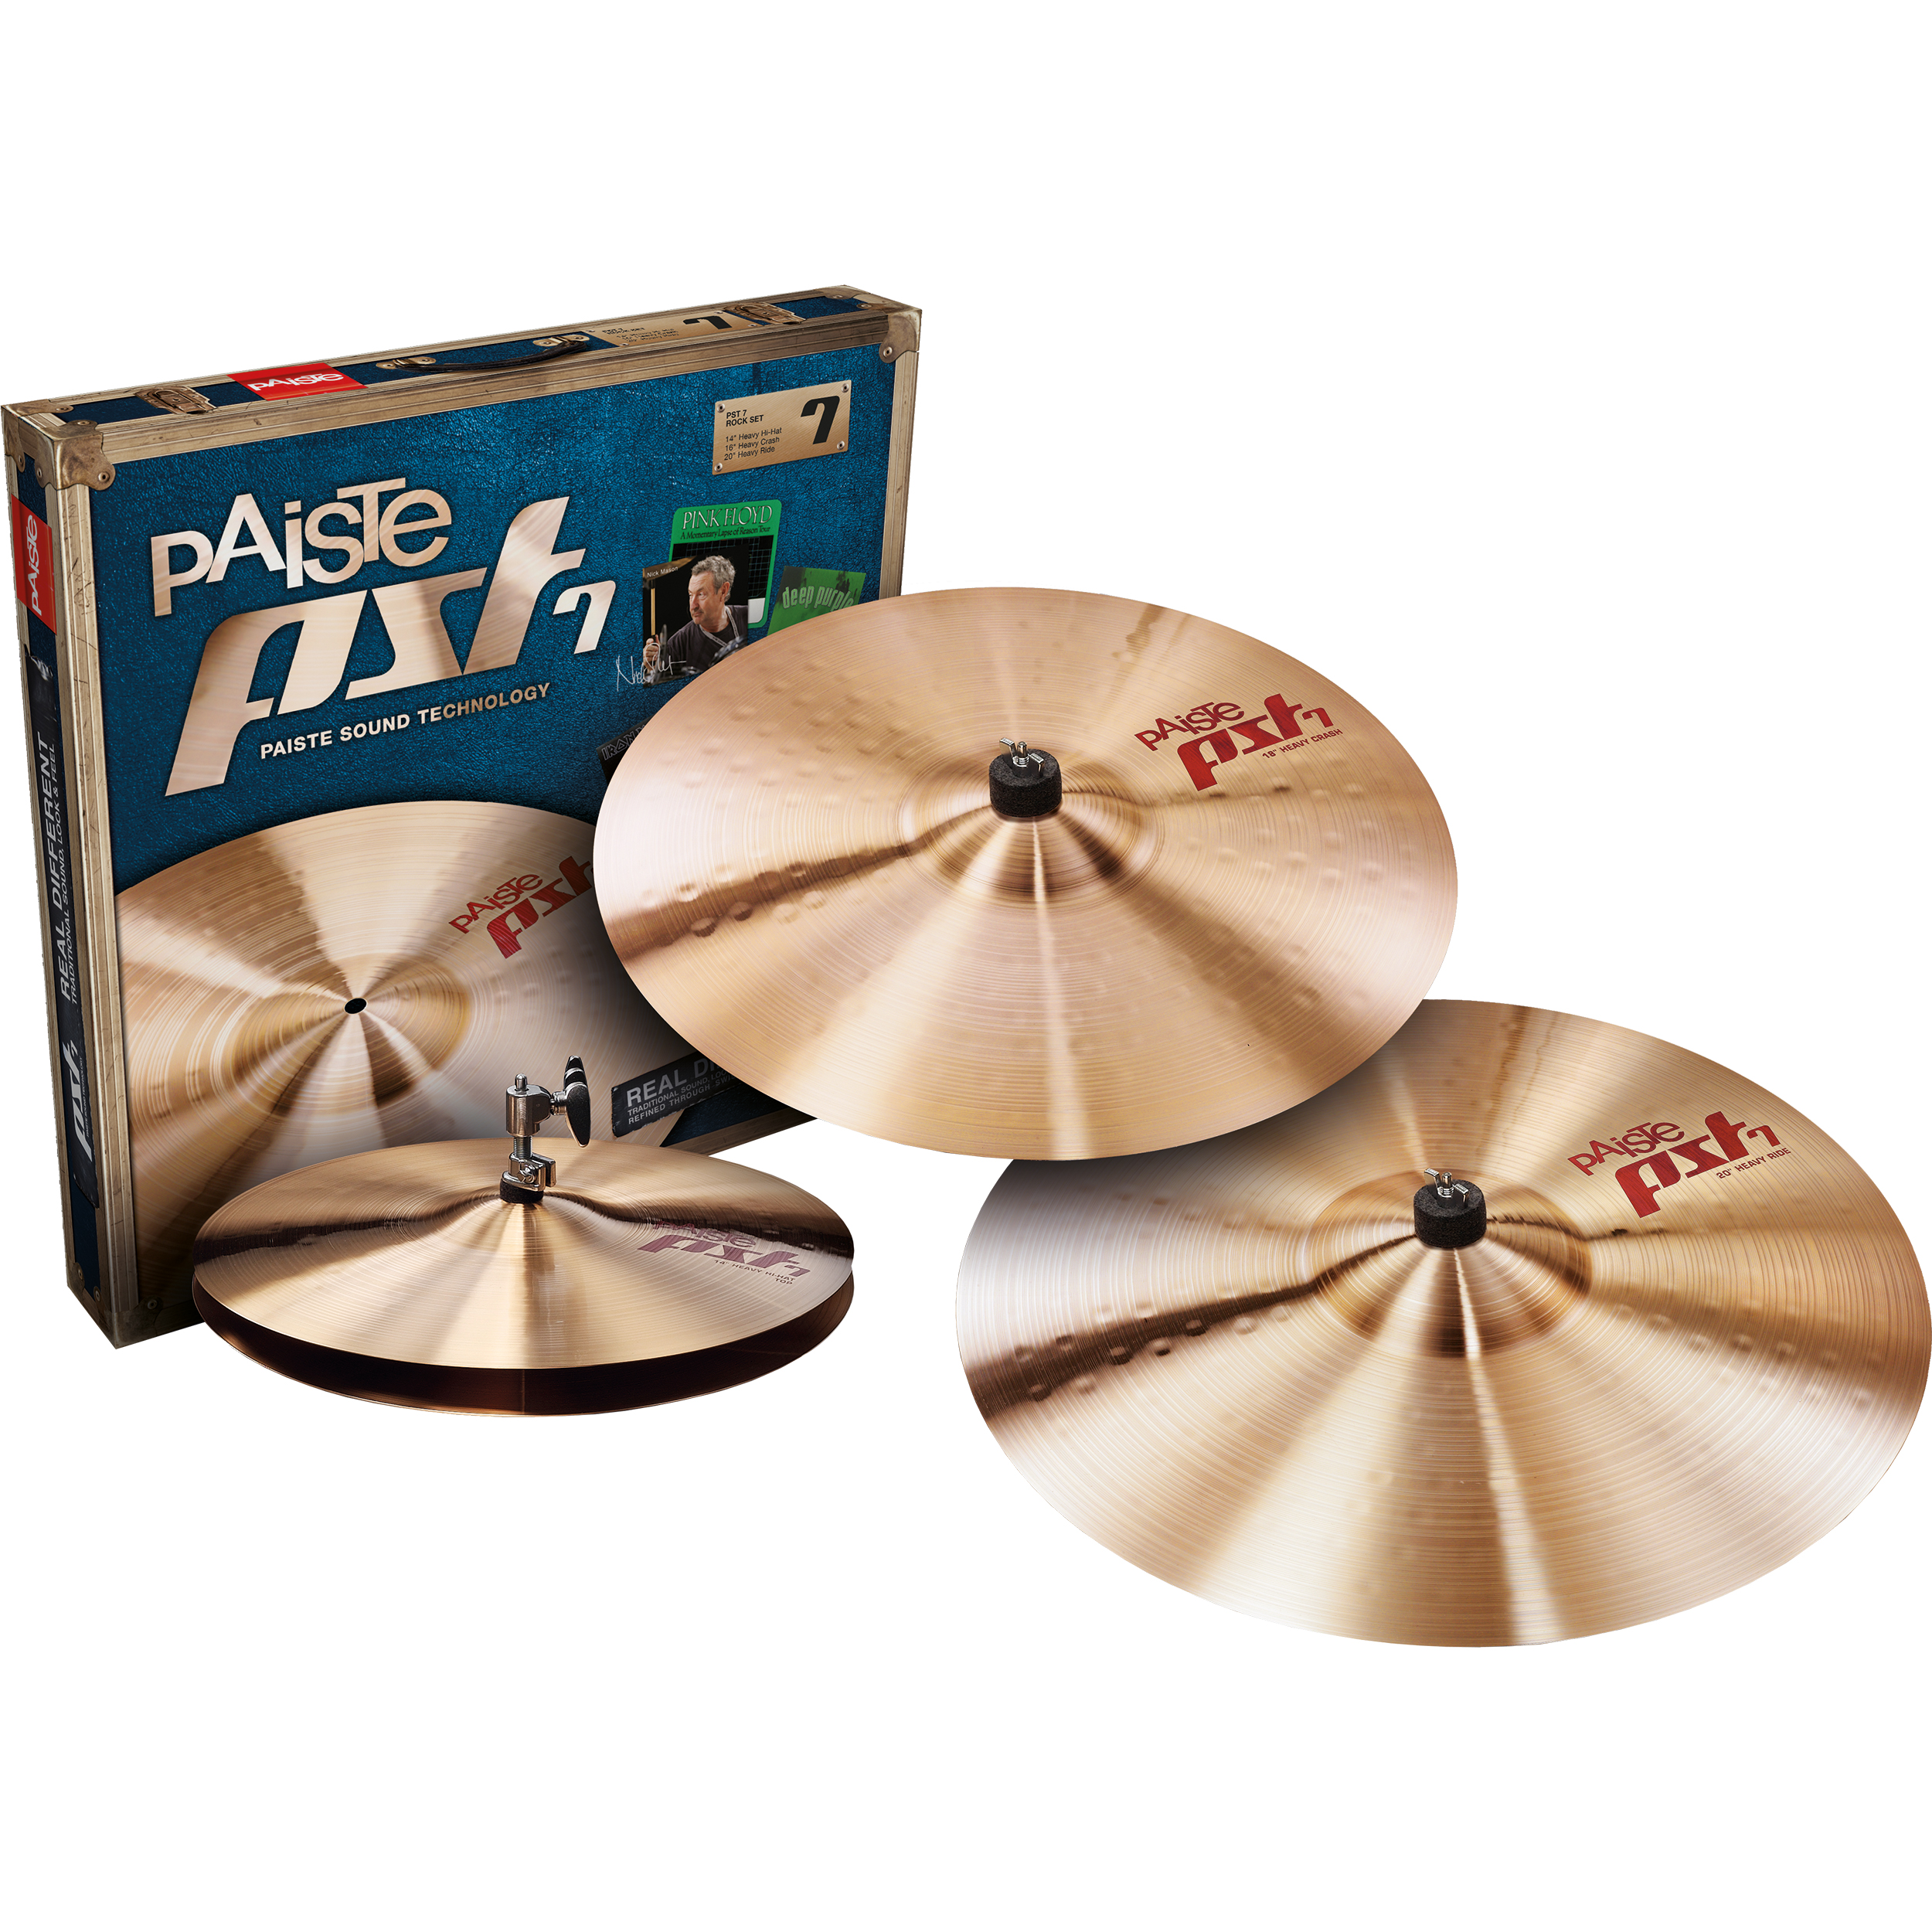 Paiste PST 7 Rock 3-Piece Cymbal Box Set (Hi Hats, Crash, Ride)